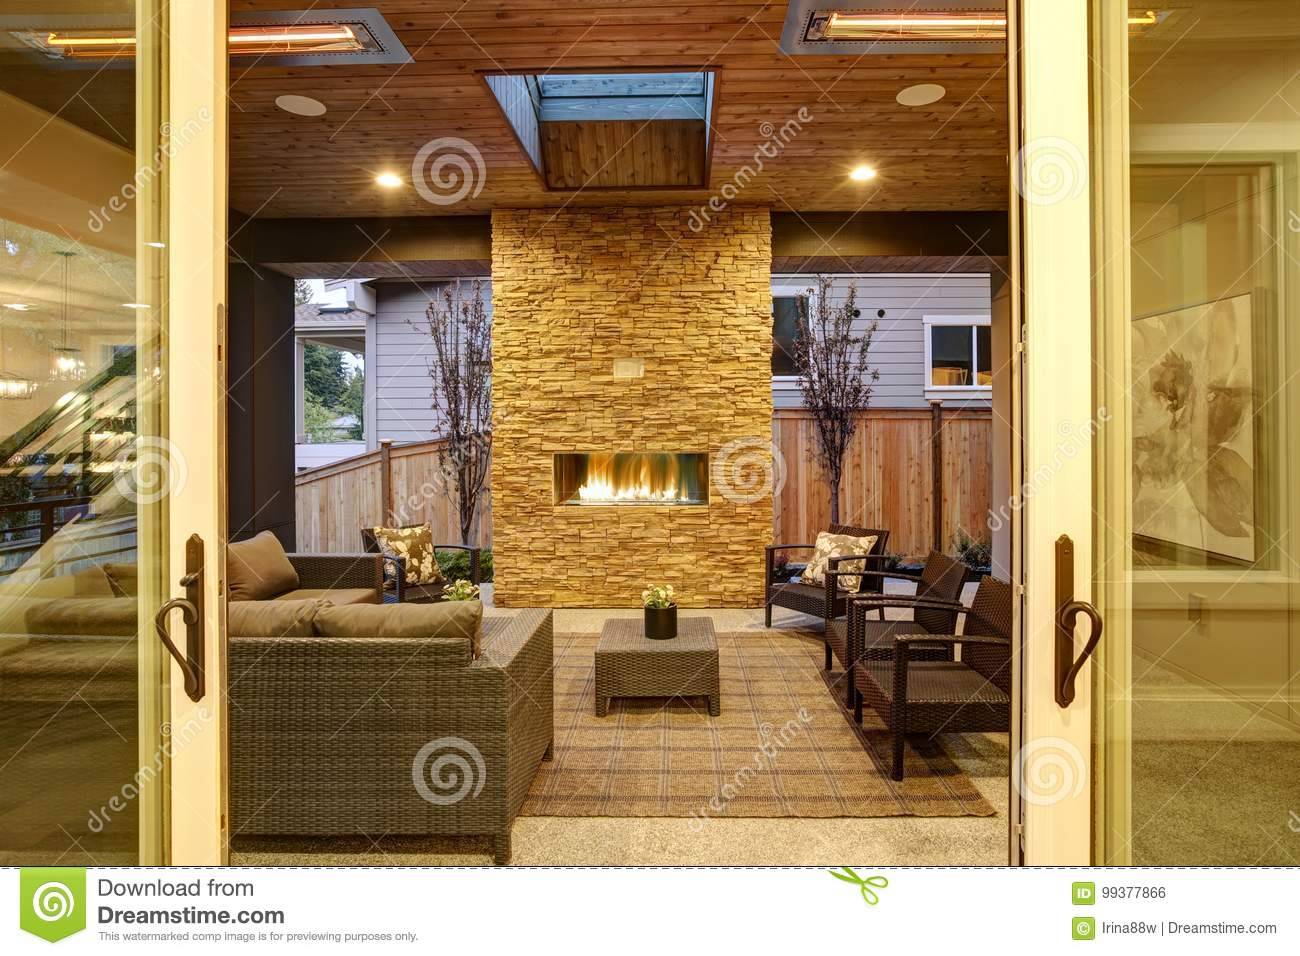 Dreamy Outdoor Covered Patio With Stone Fireplace Stock Photo Image Of Ottoman Fenced 99377866